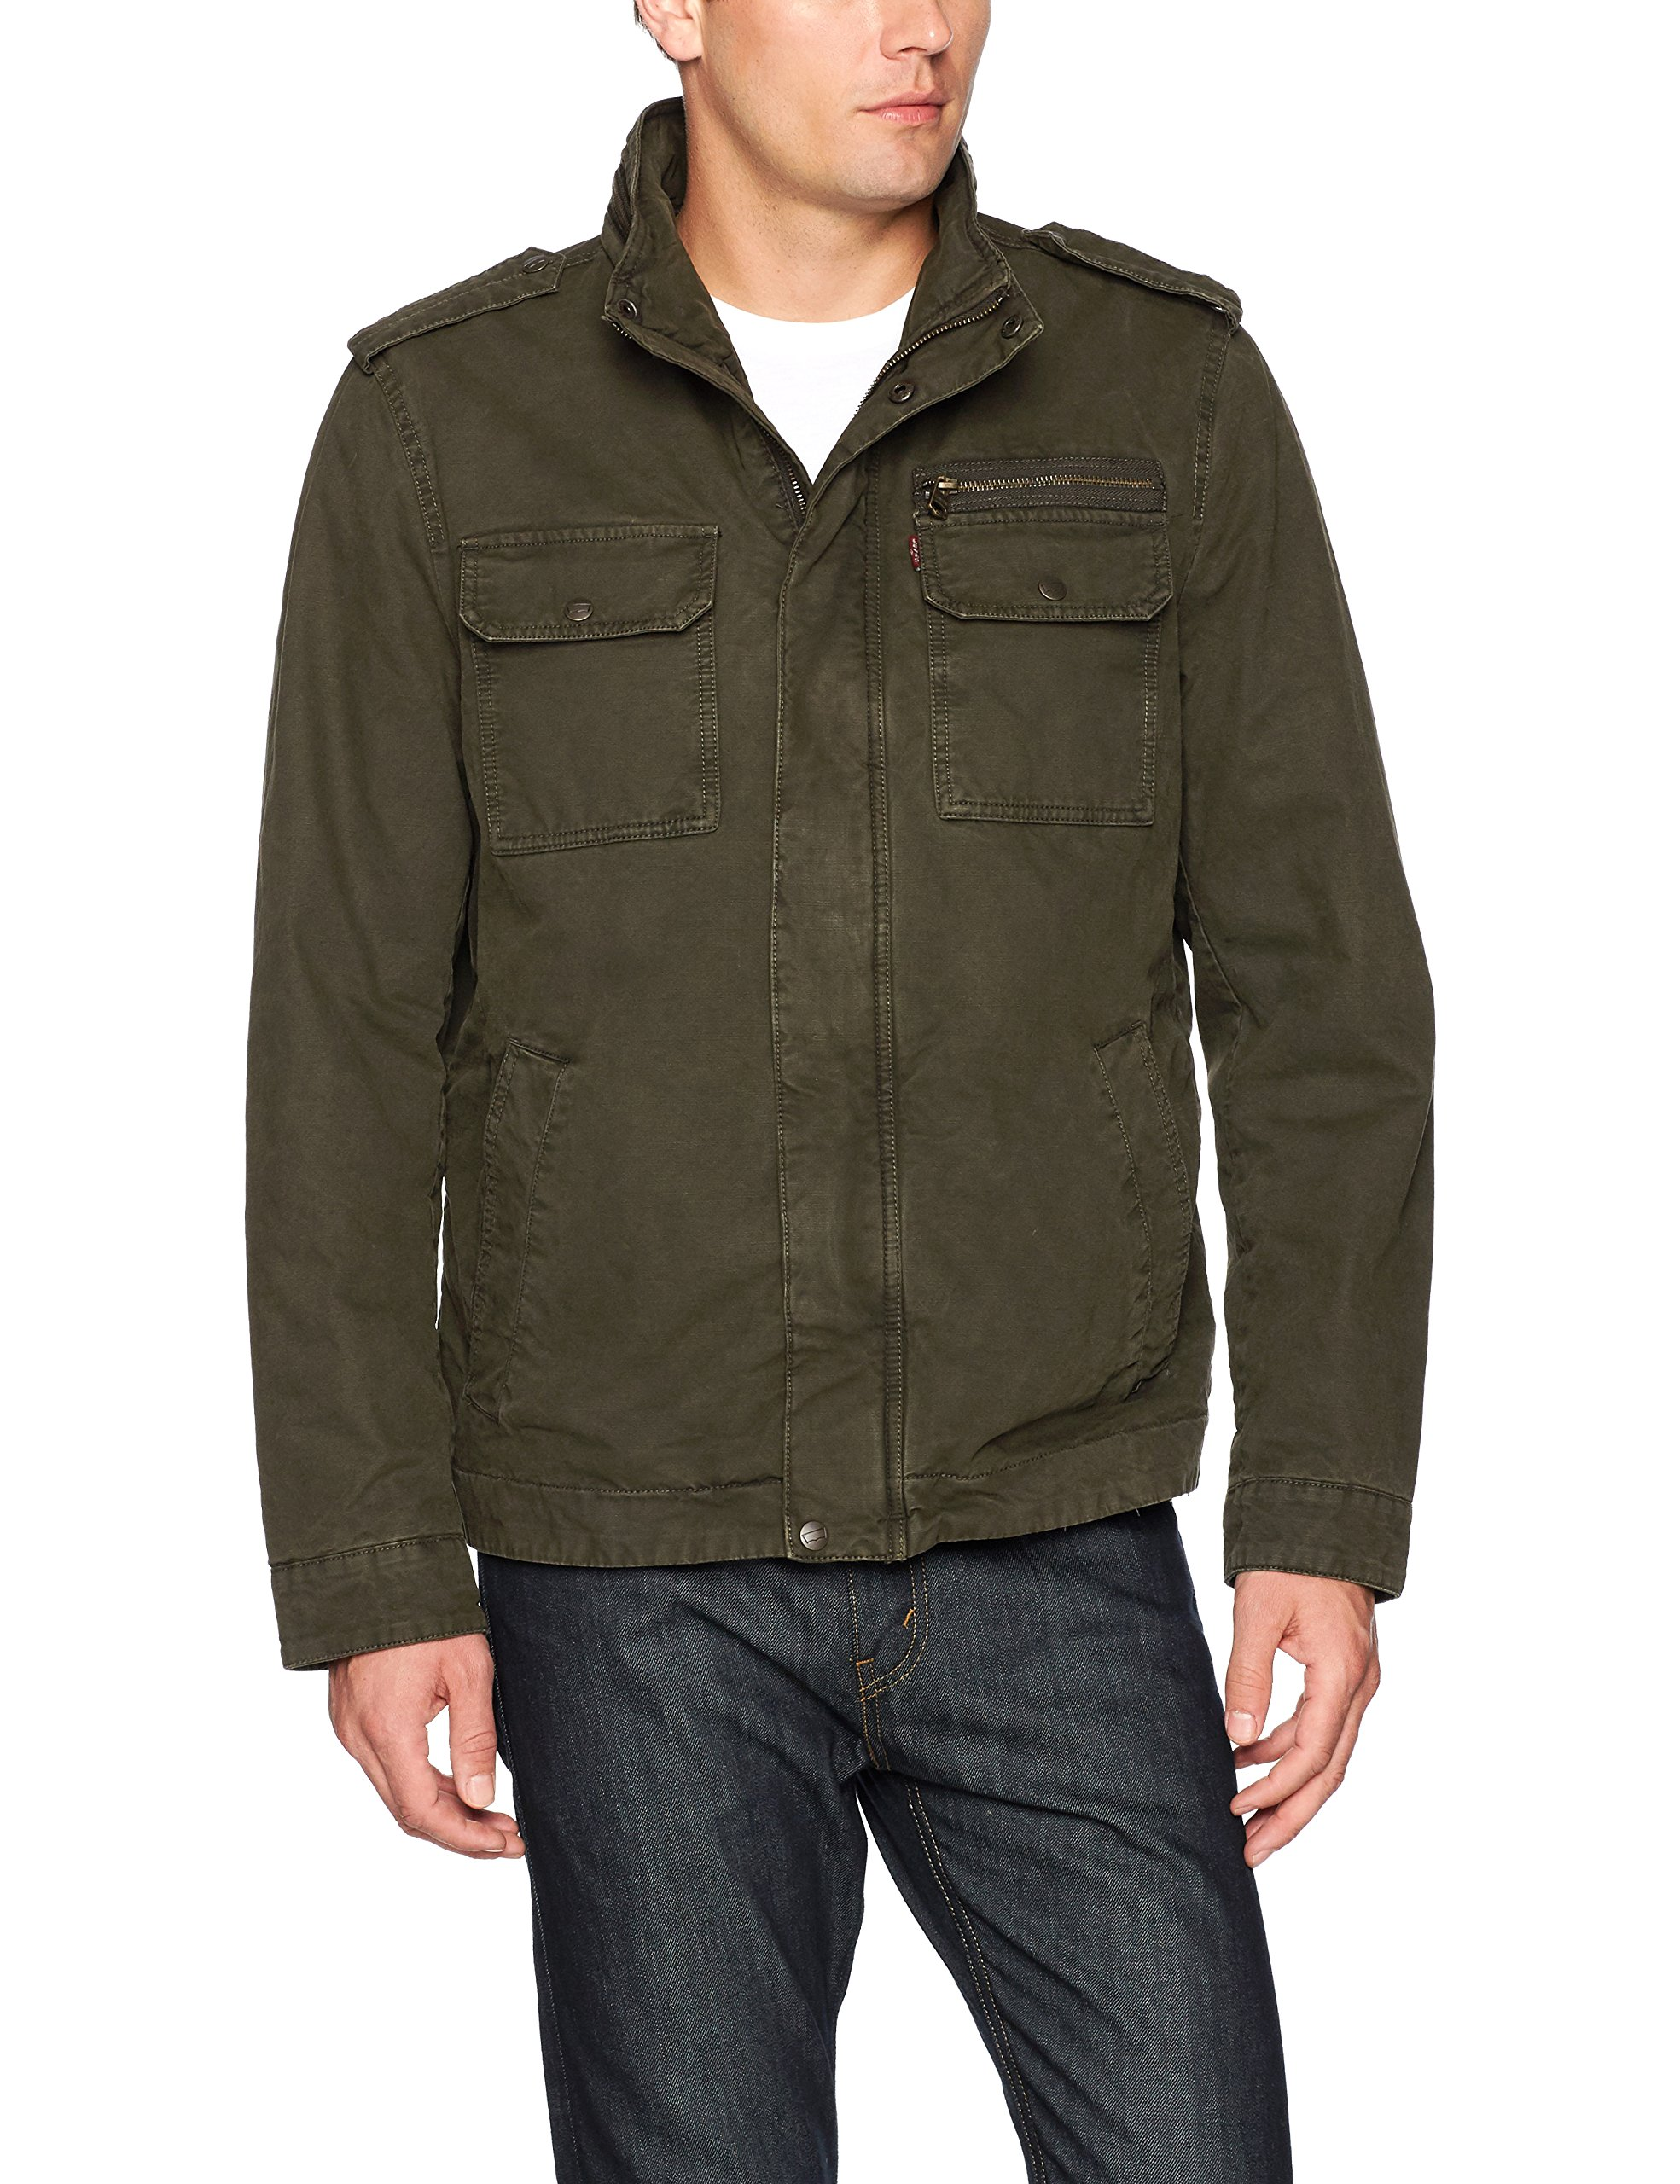 Levi's Men's Washed Cotton Two Pocket Sherpa Lined Military Jacket, Olive, Small by Levi's